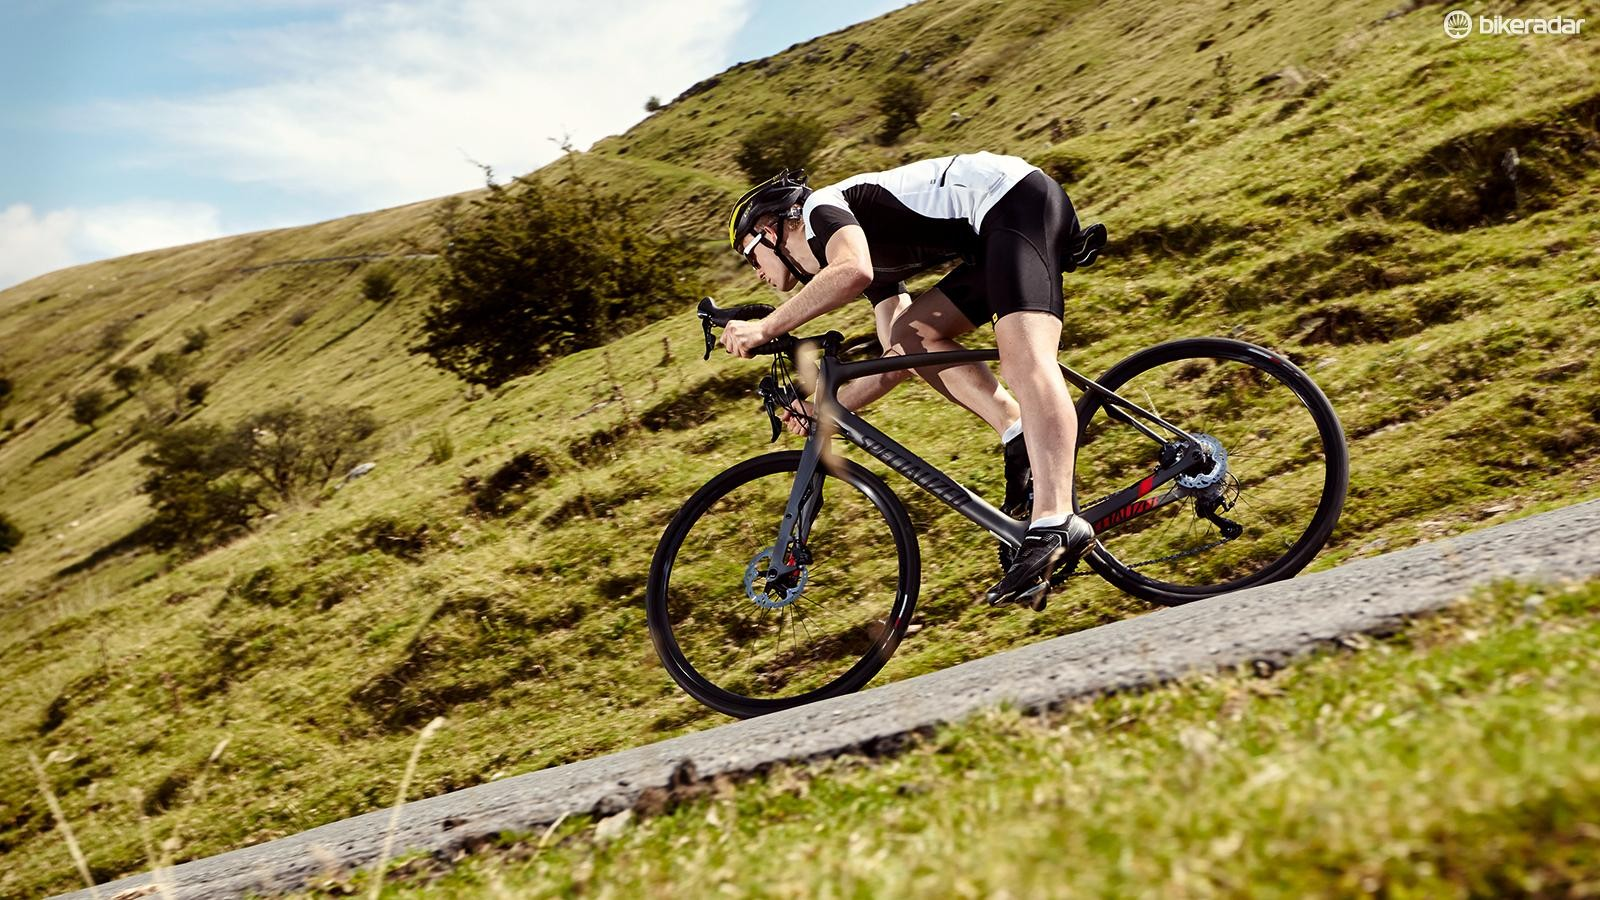 Super-compact cranksets could become more common for road riders too